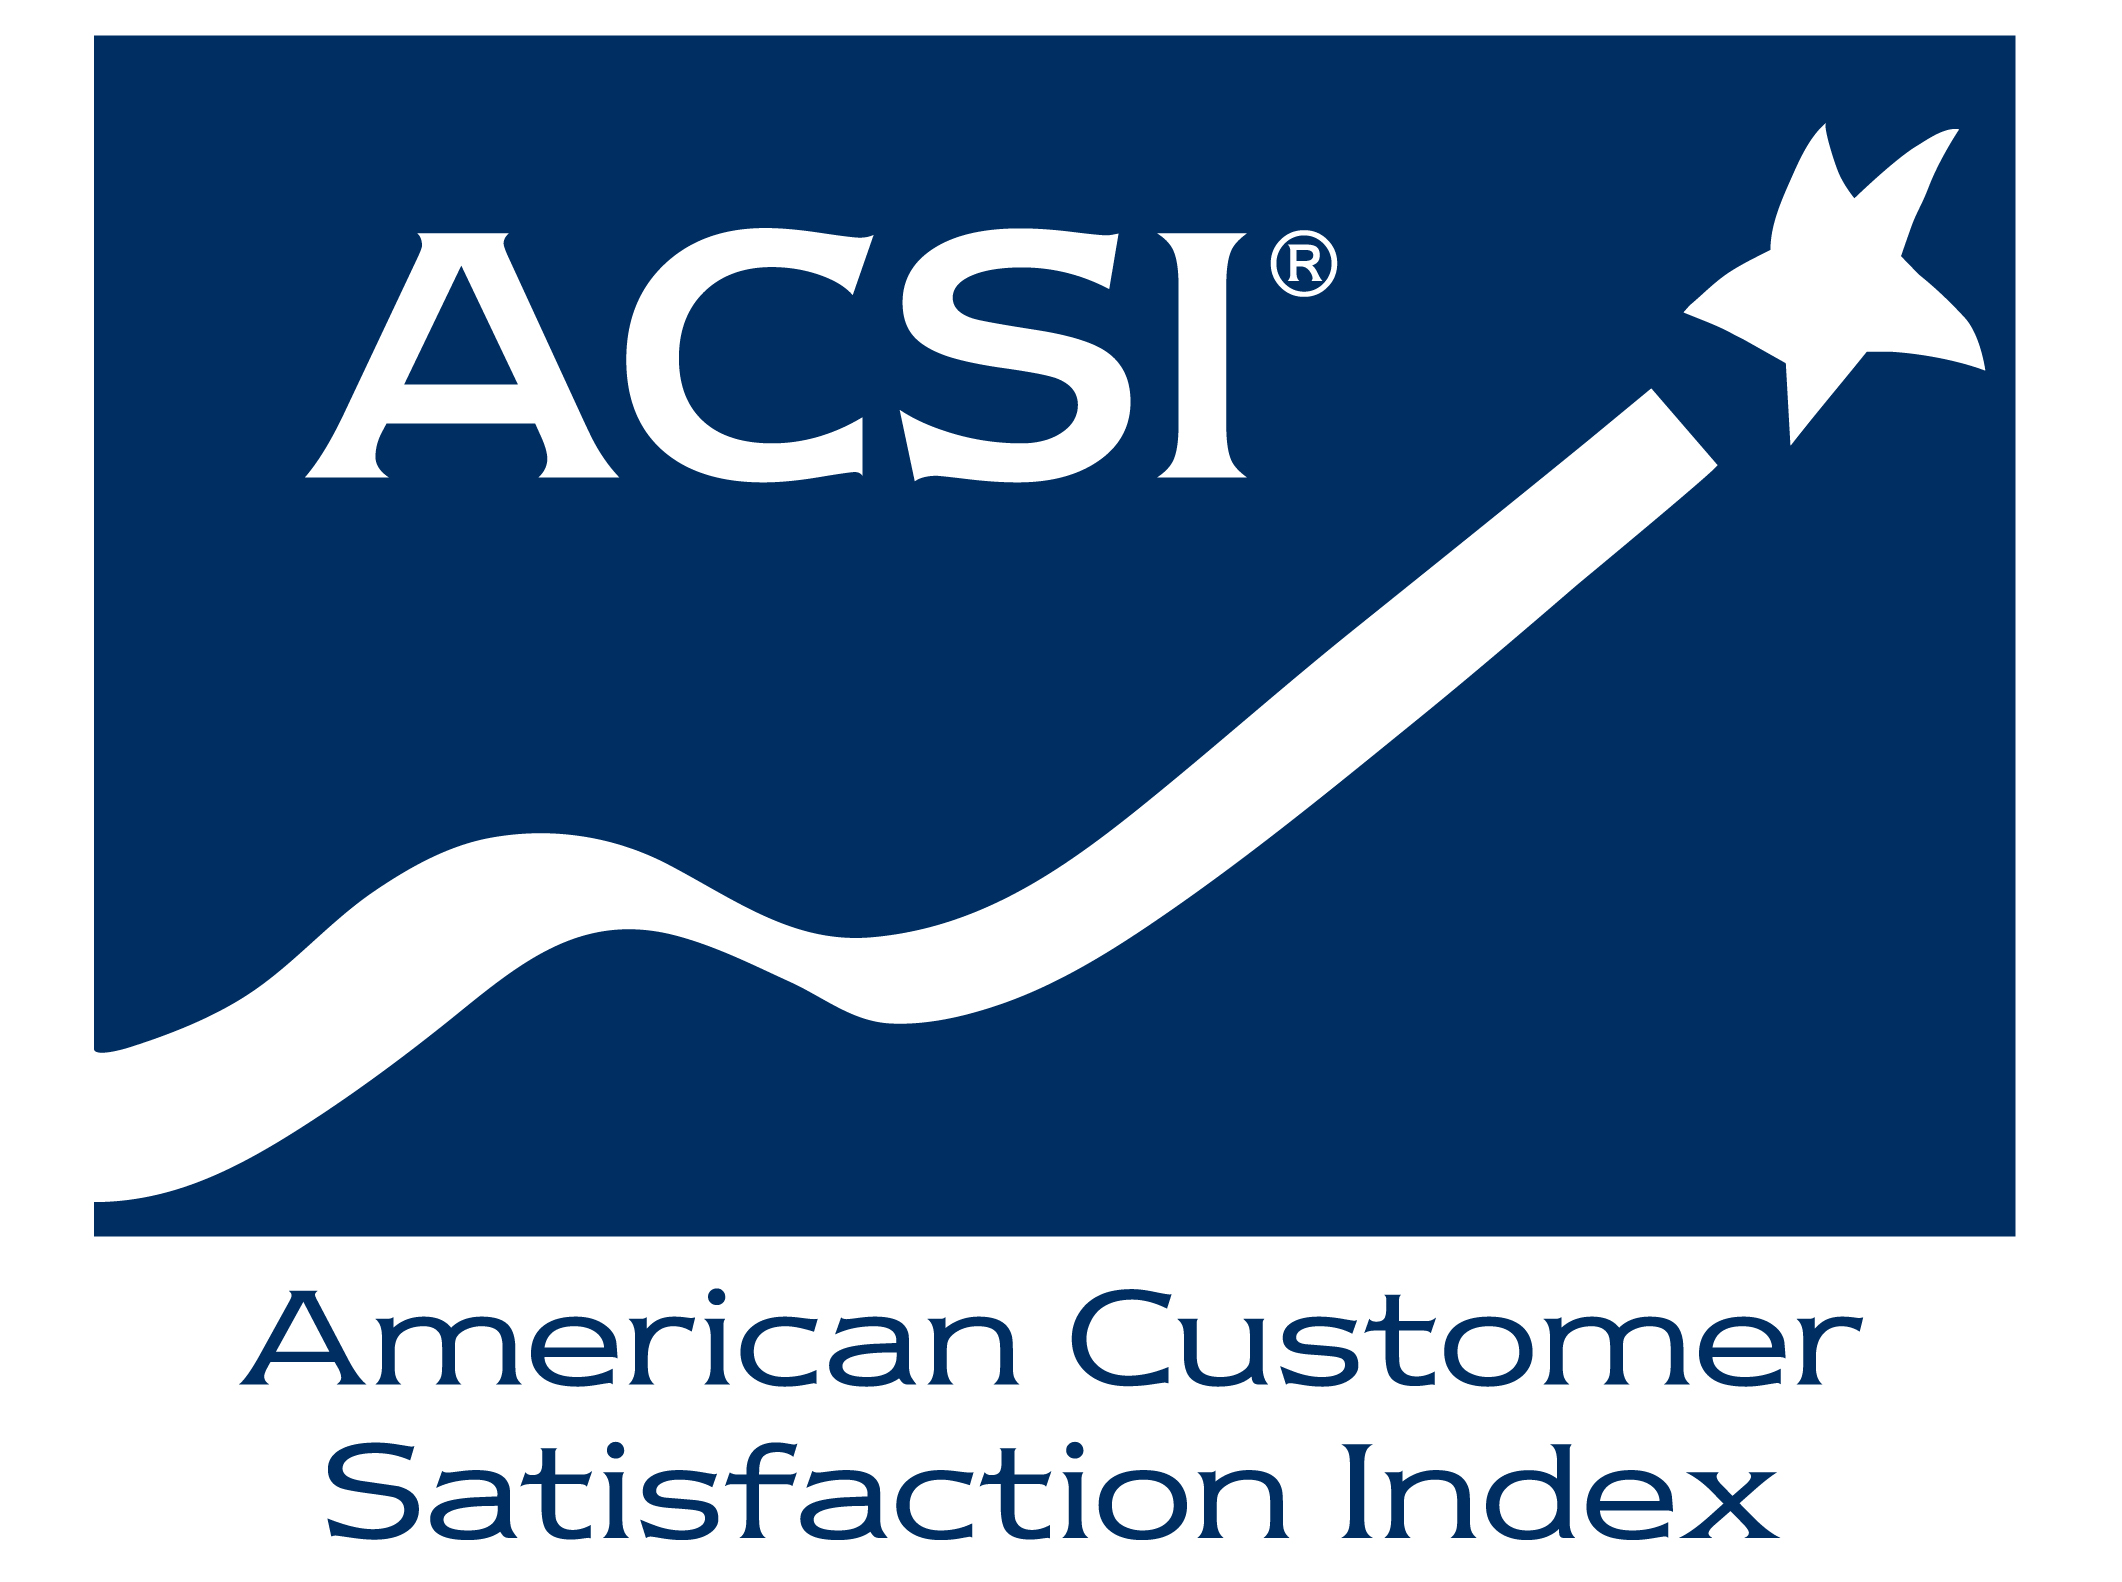 The ACSI - American Customer Satisfaction Index - is is the only national cross-industry measure of customer satisfaction in the United States. Each year, the ACSI uses data from interviews with roughly 300,000 customers as inputs to an econometric model for analyzing customer satisfaction with more than 400 companies in 46 industries and 10 economic sectors.